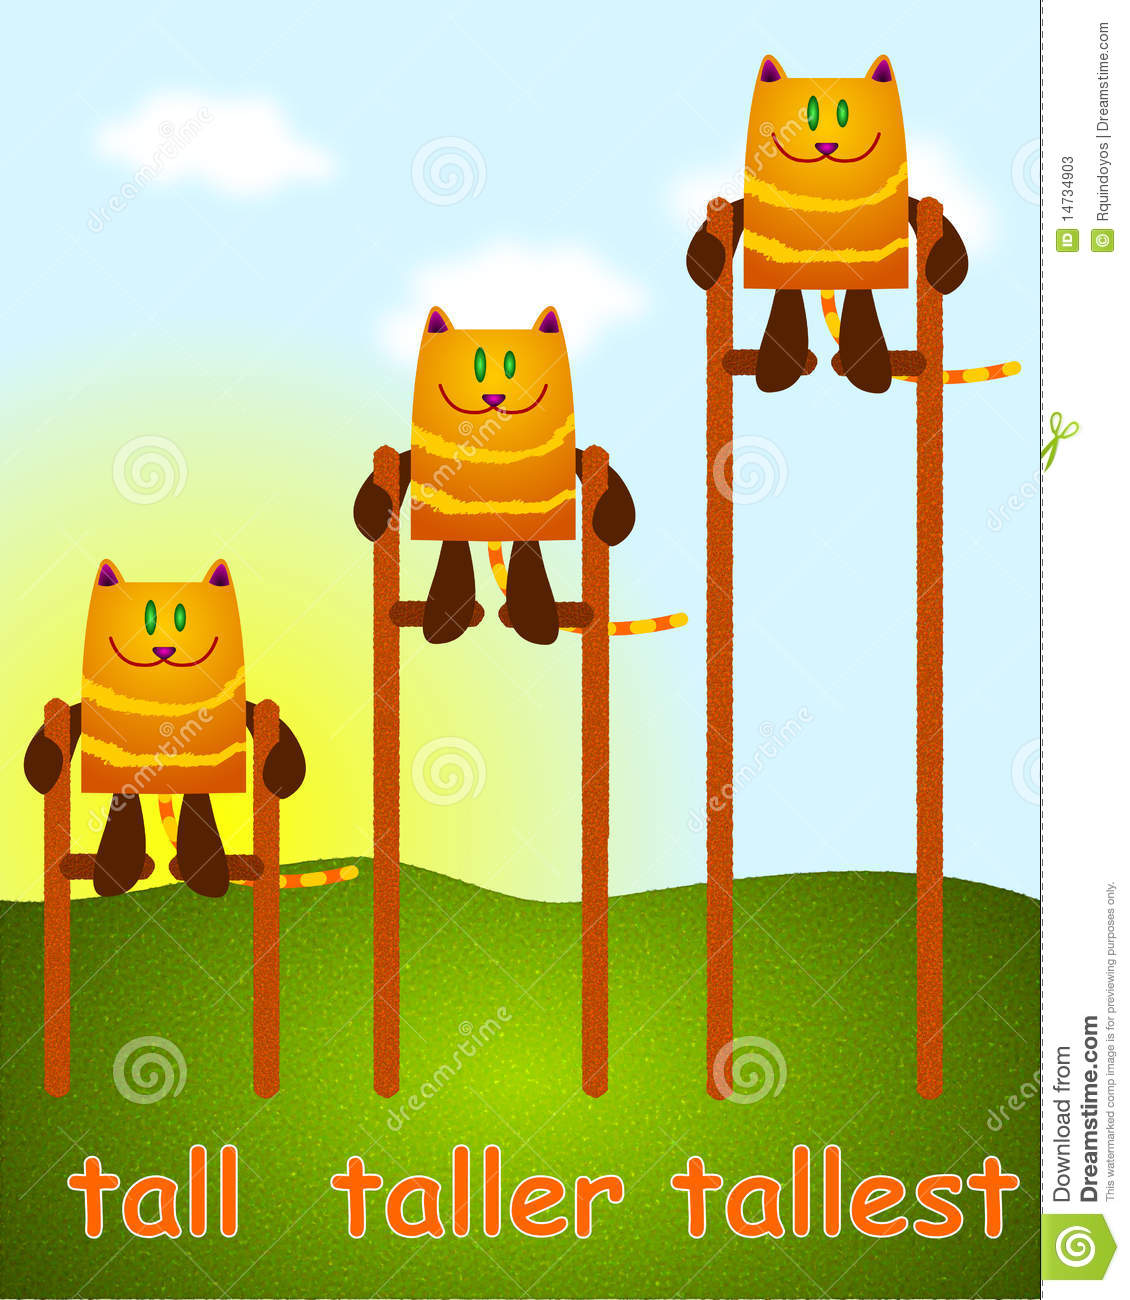 Tall Taller Tallest Stock Illustration Illustration Of